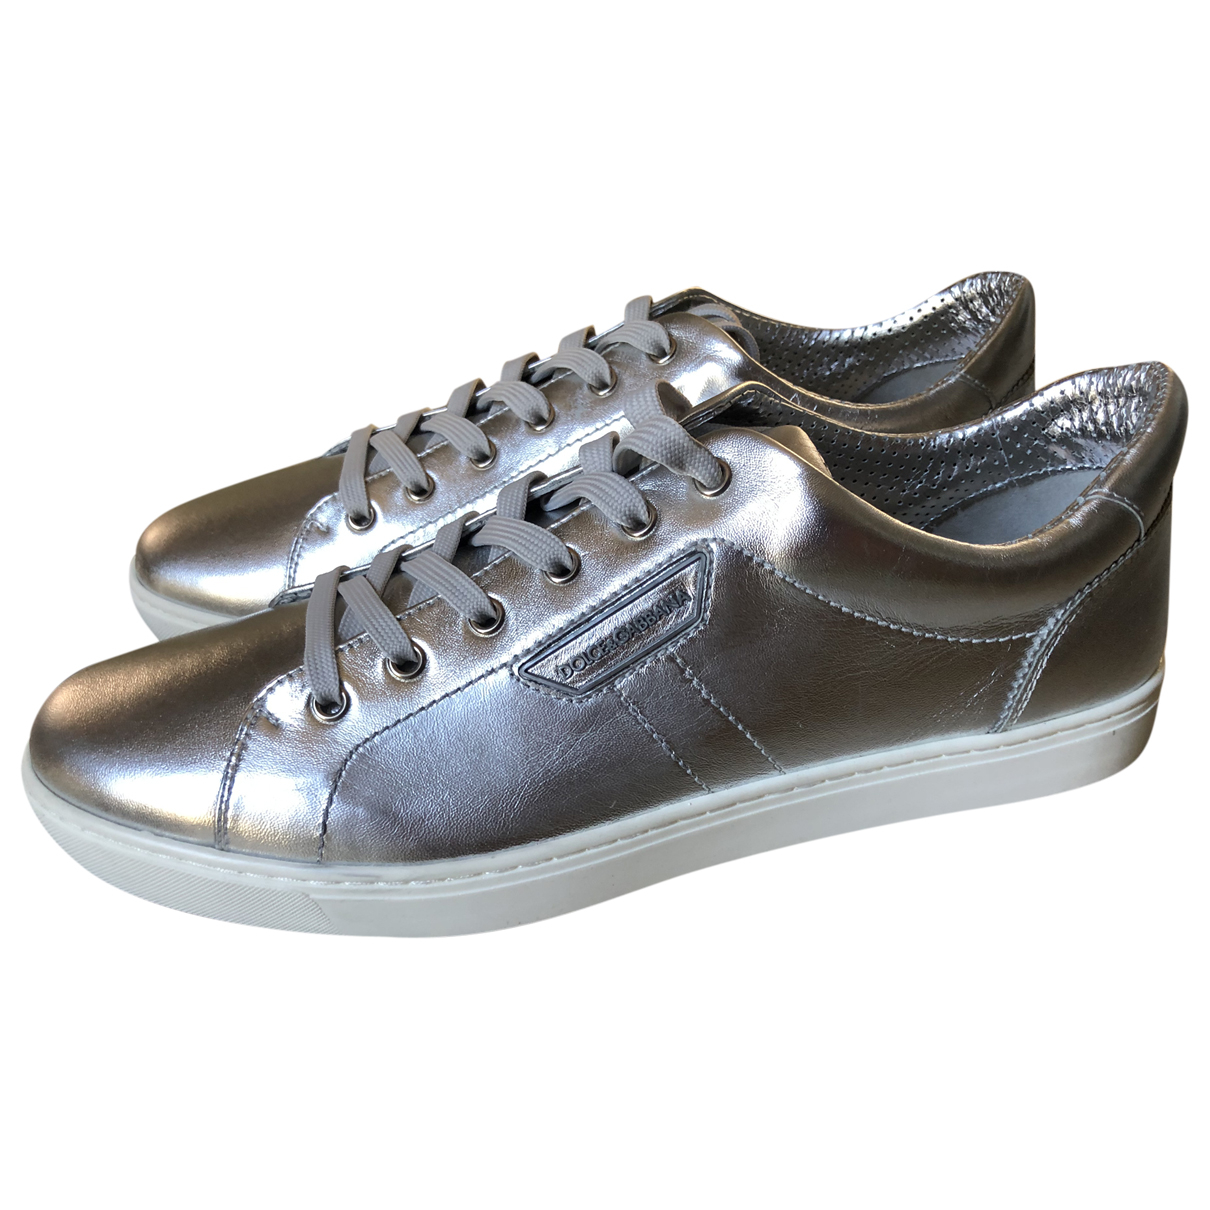 Dolce & Gabbana \N Silver Leather Trainers for Men 44 EU